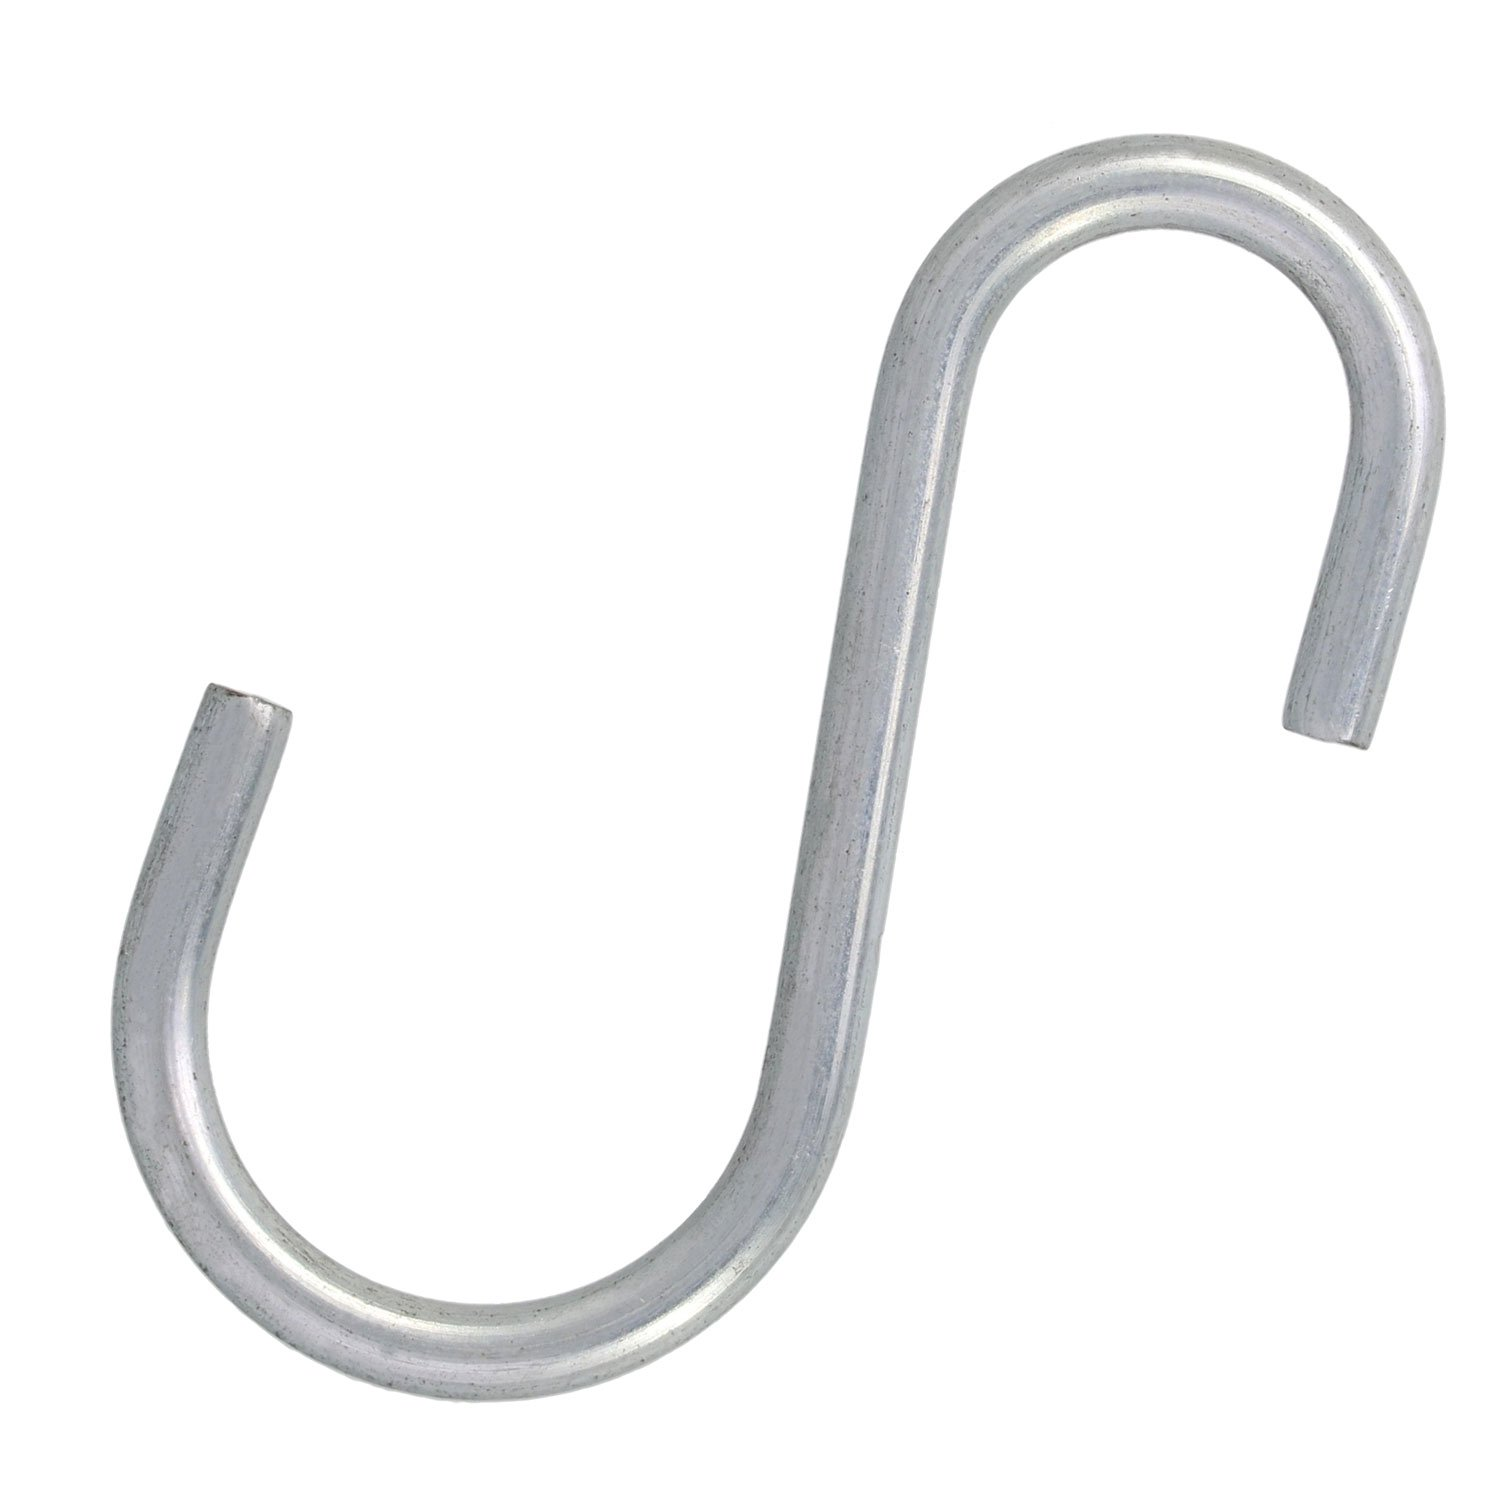 2.5'' x 41 lbs, Zinc Plated S-Hook, Type I, #539